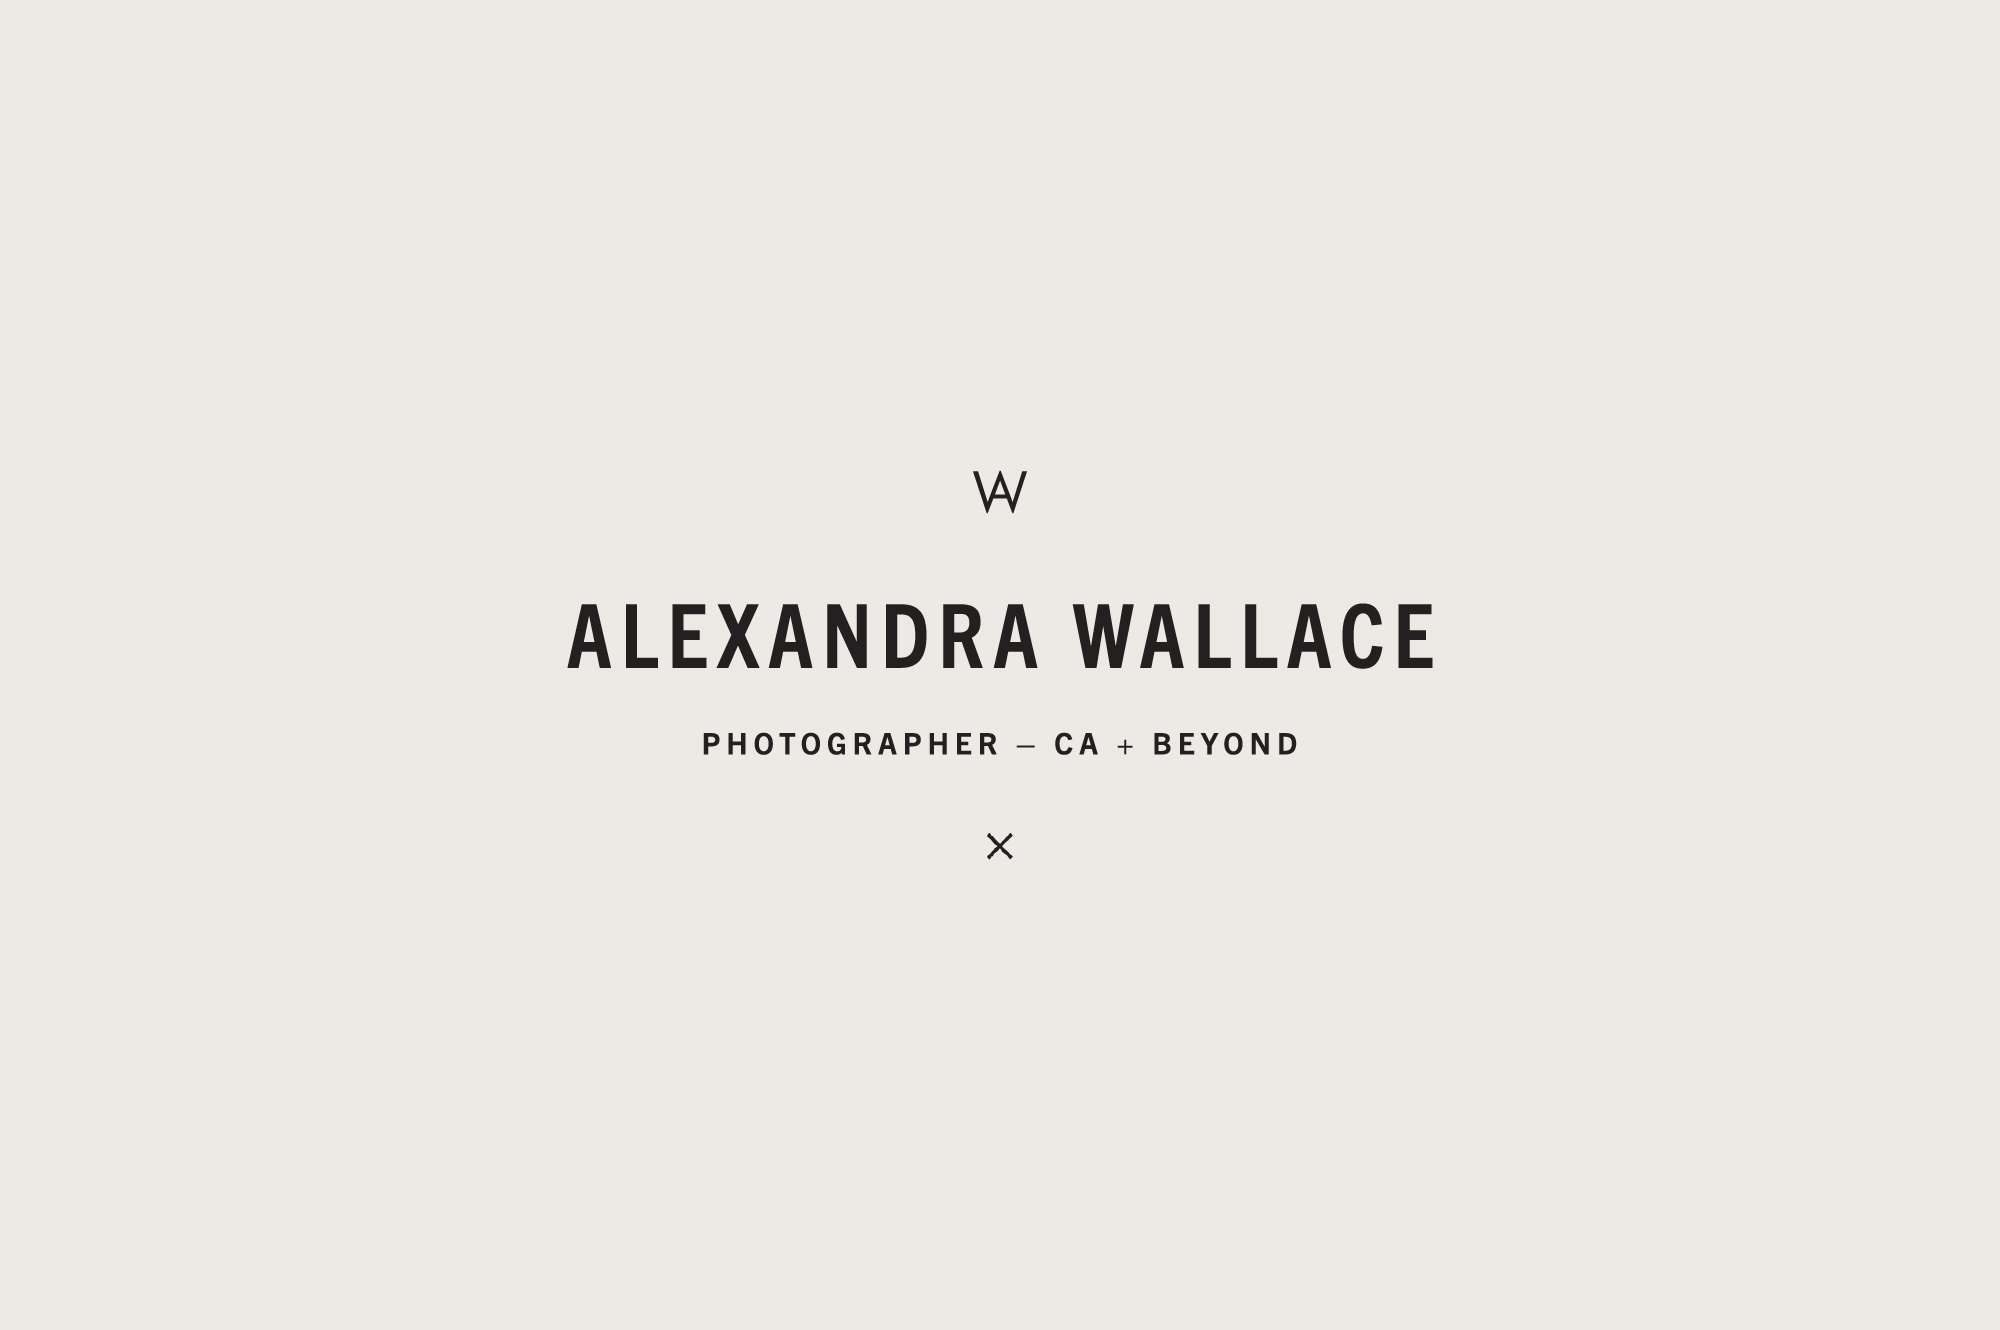 Primary Wordmark for Minimal Modern Branding Suite Brand Design for California Photographer Alexandra Wallace